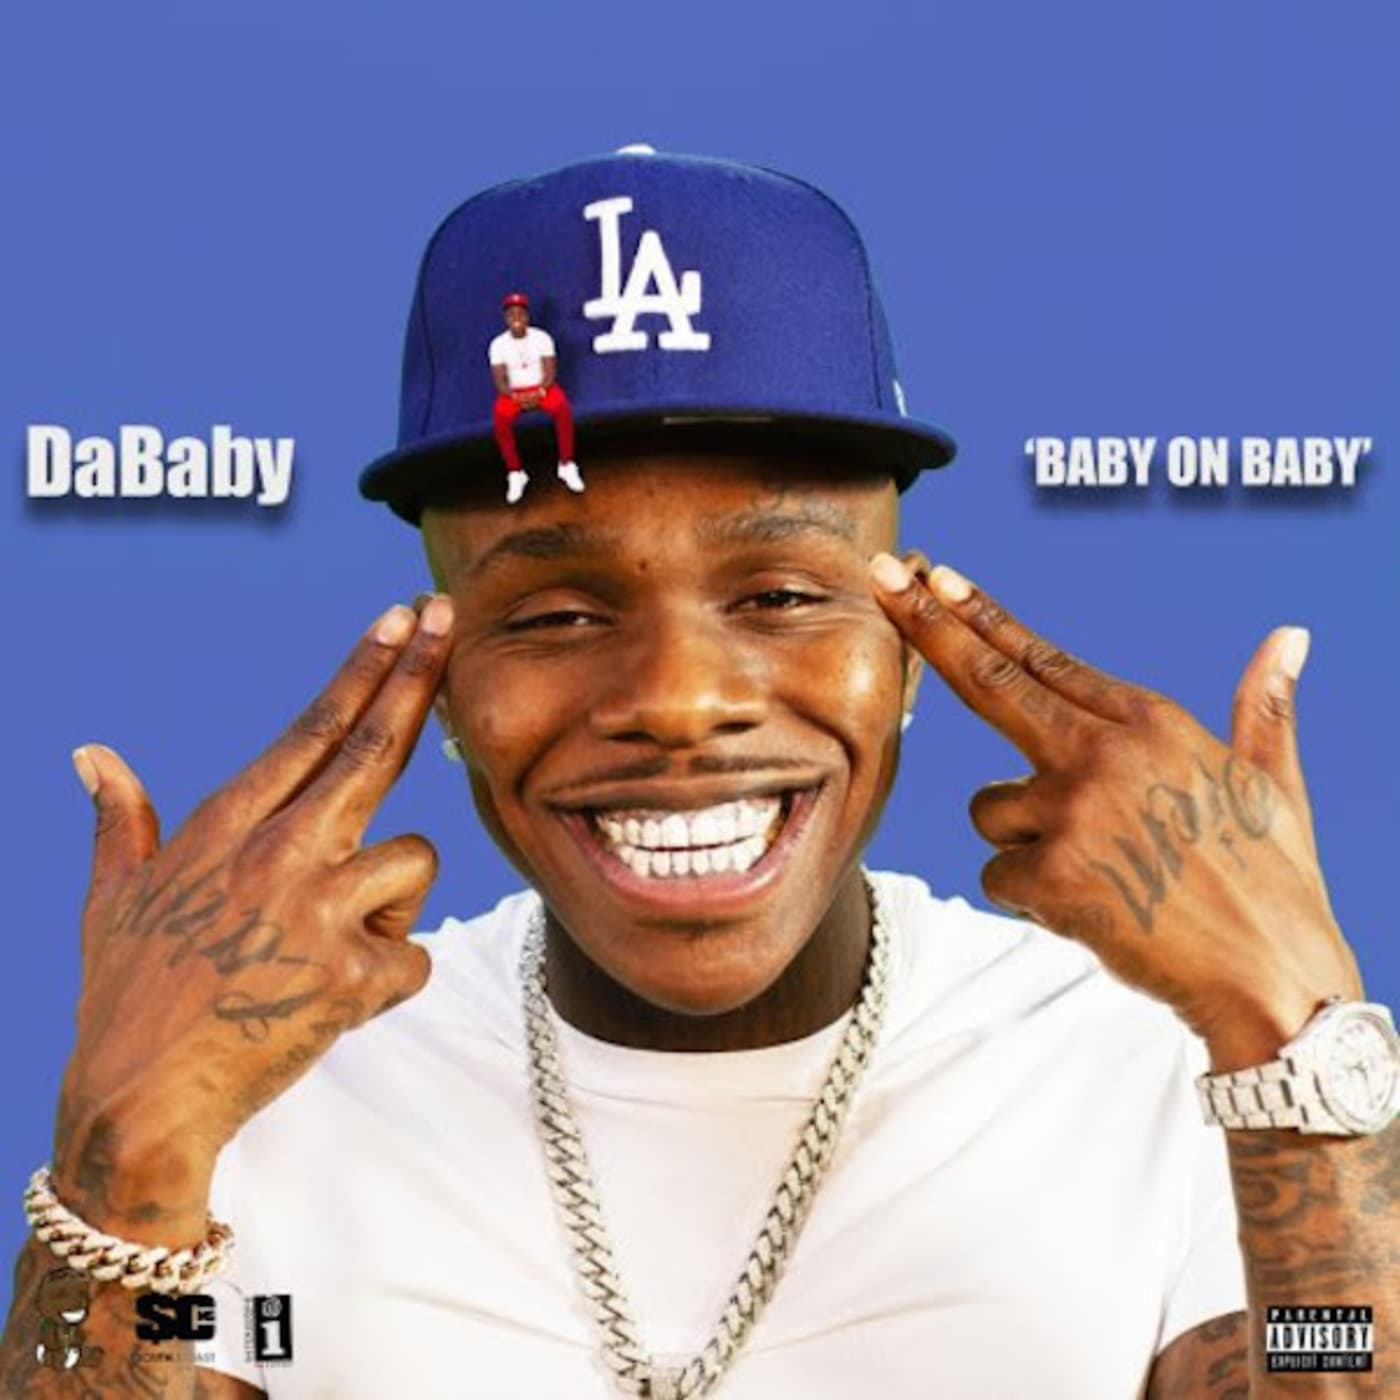 DaBaby 'Baby on Baby'